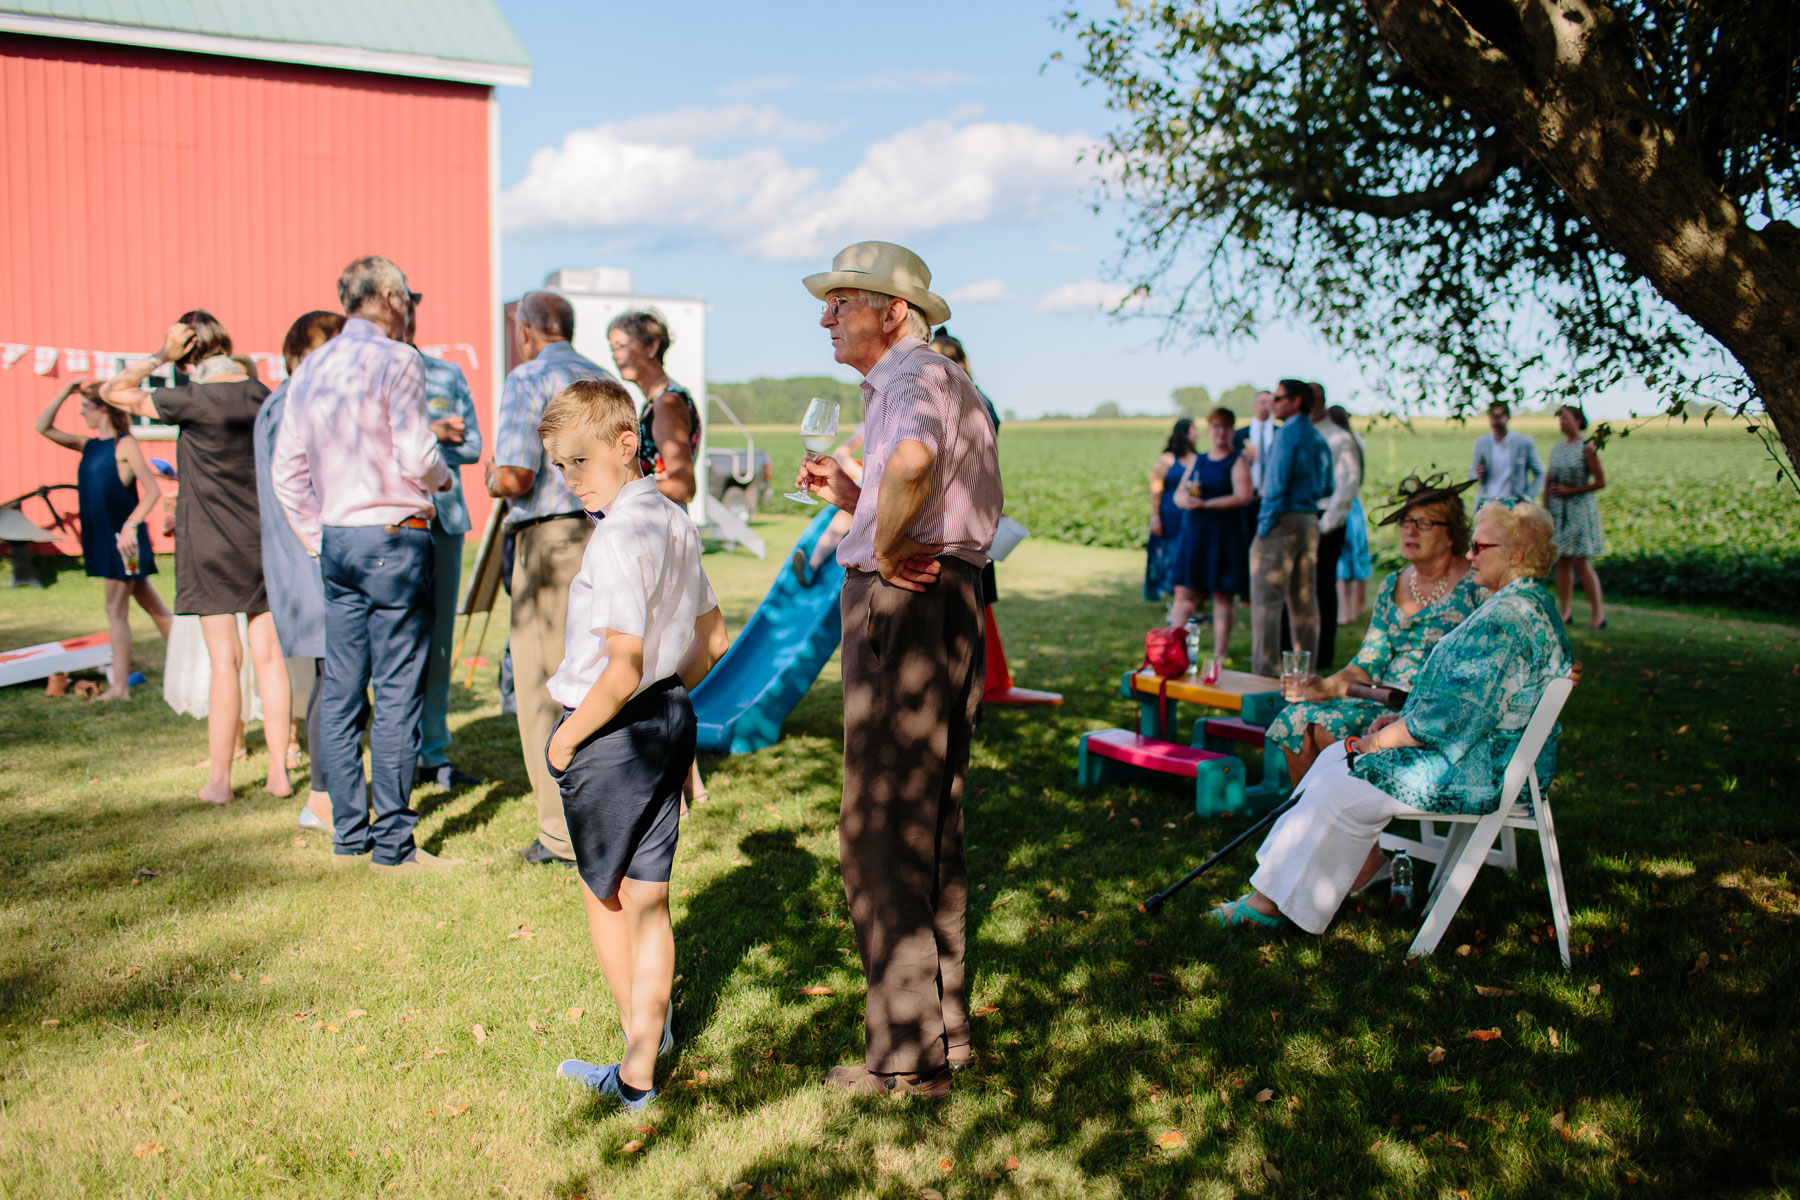 Guest and a little boy standing in mottled sunlight with barn in background at this rustic family farm wedding.